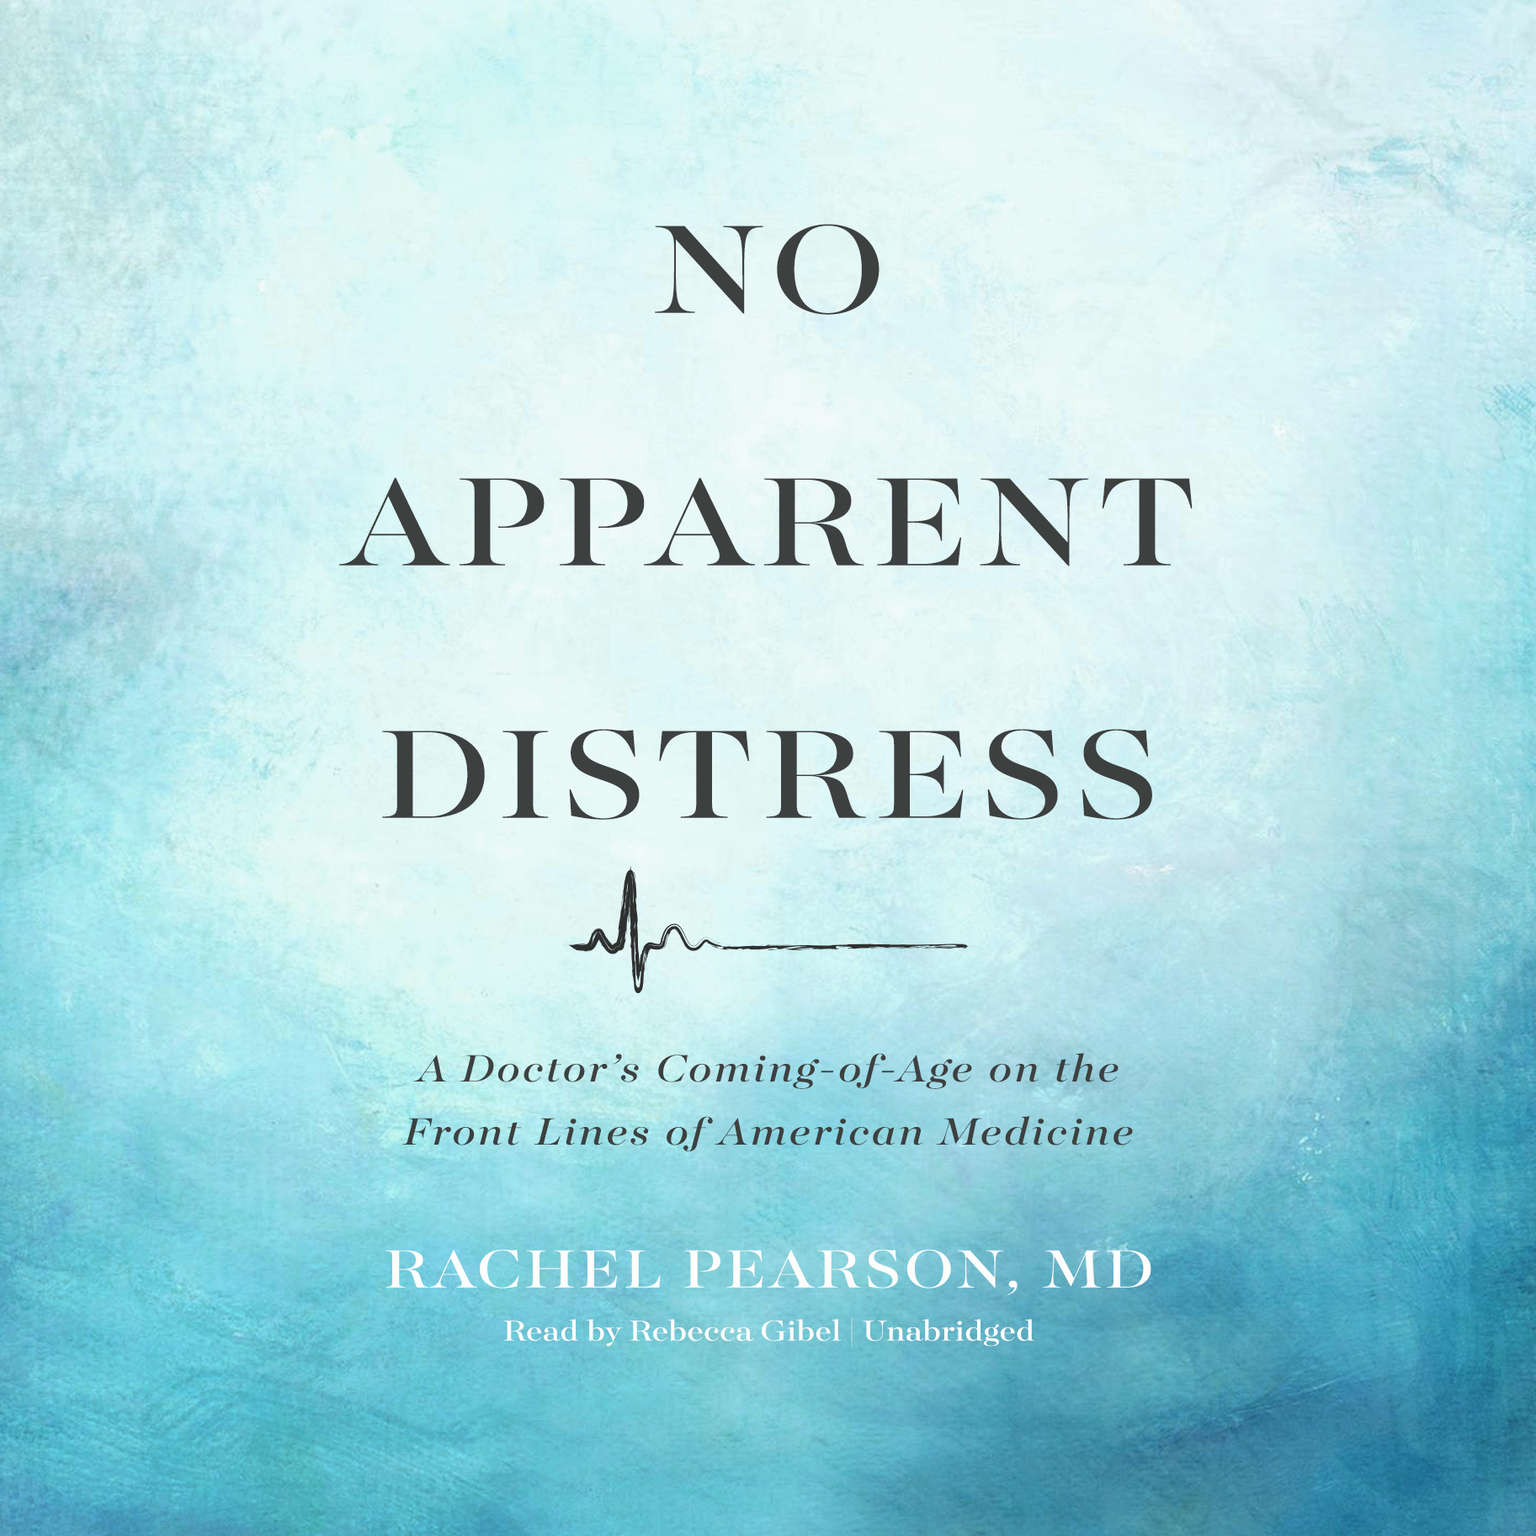 No Apparent Distress: A Doctor's Coming-of-Age on the Front Lines of American Medicine Audiobook, by Rachel Pearson